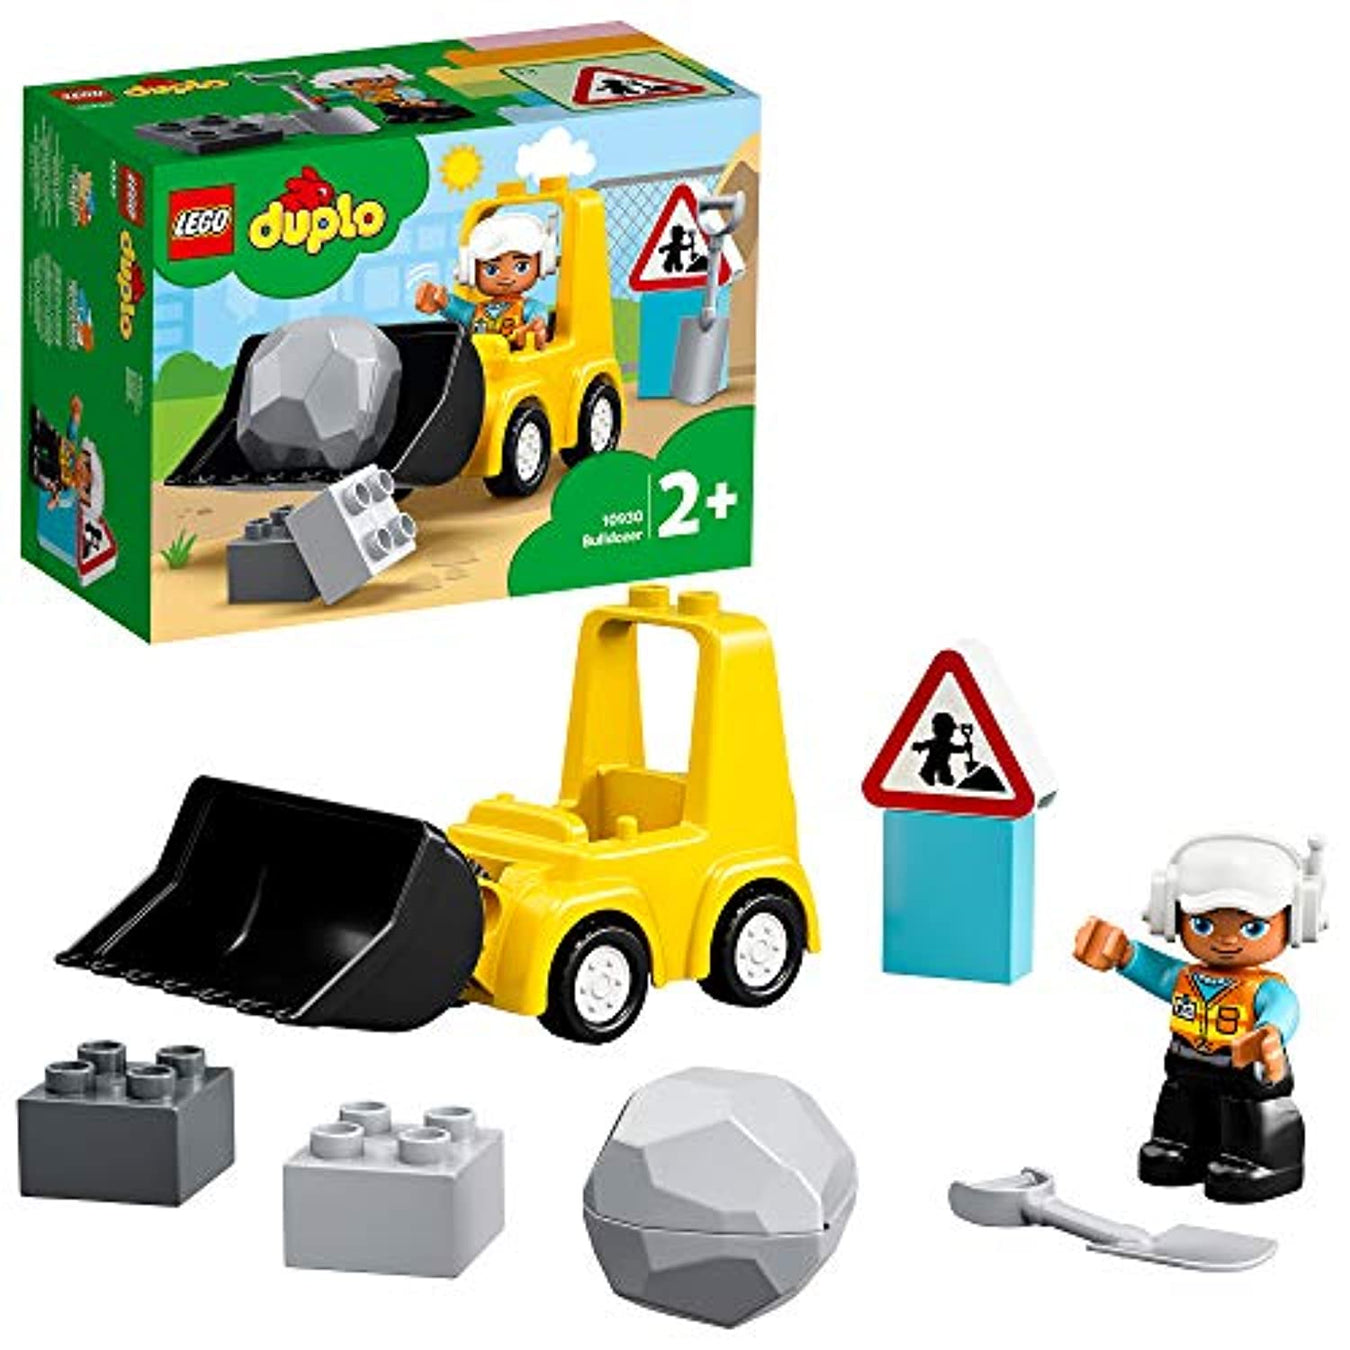 -Toys and Playsets